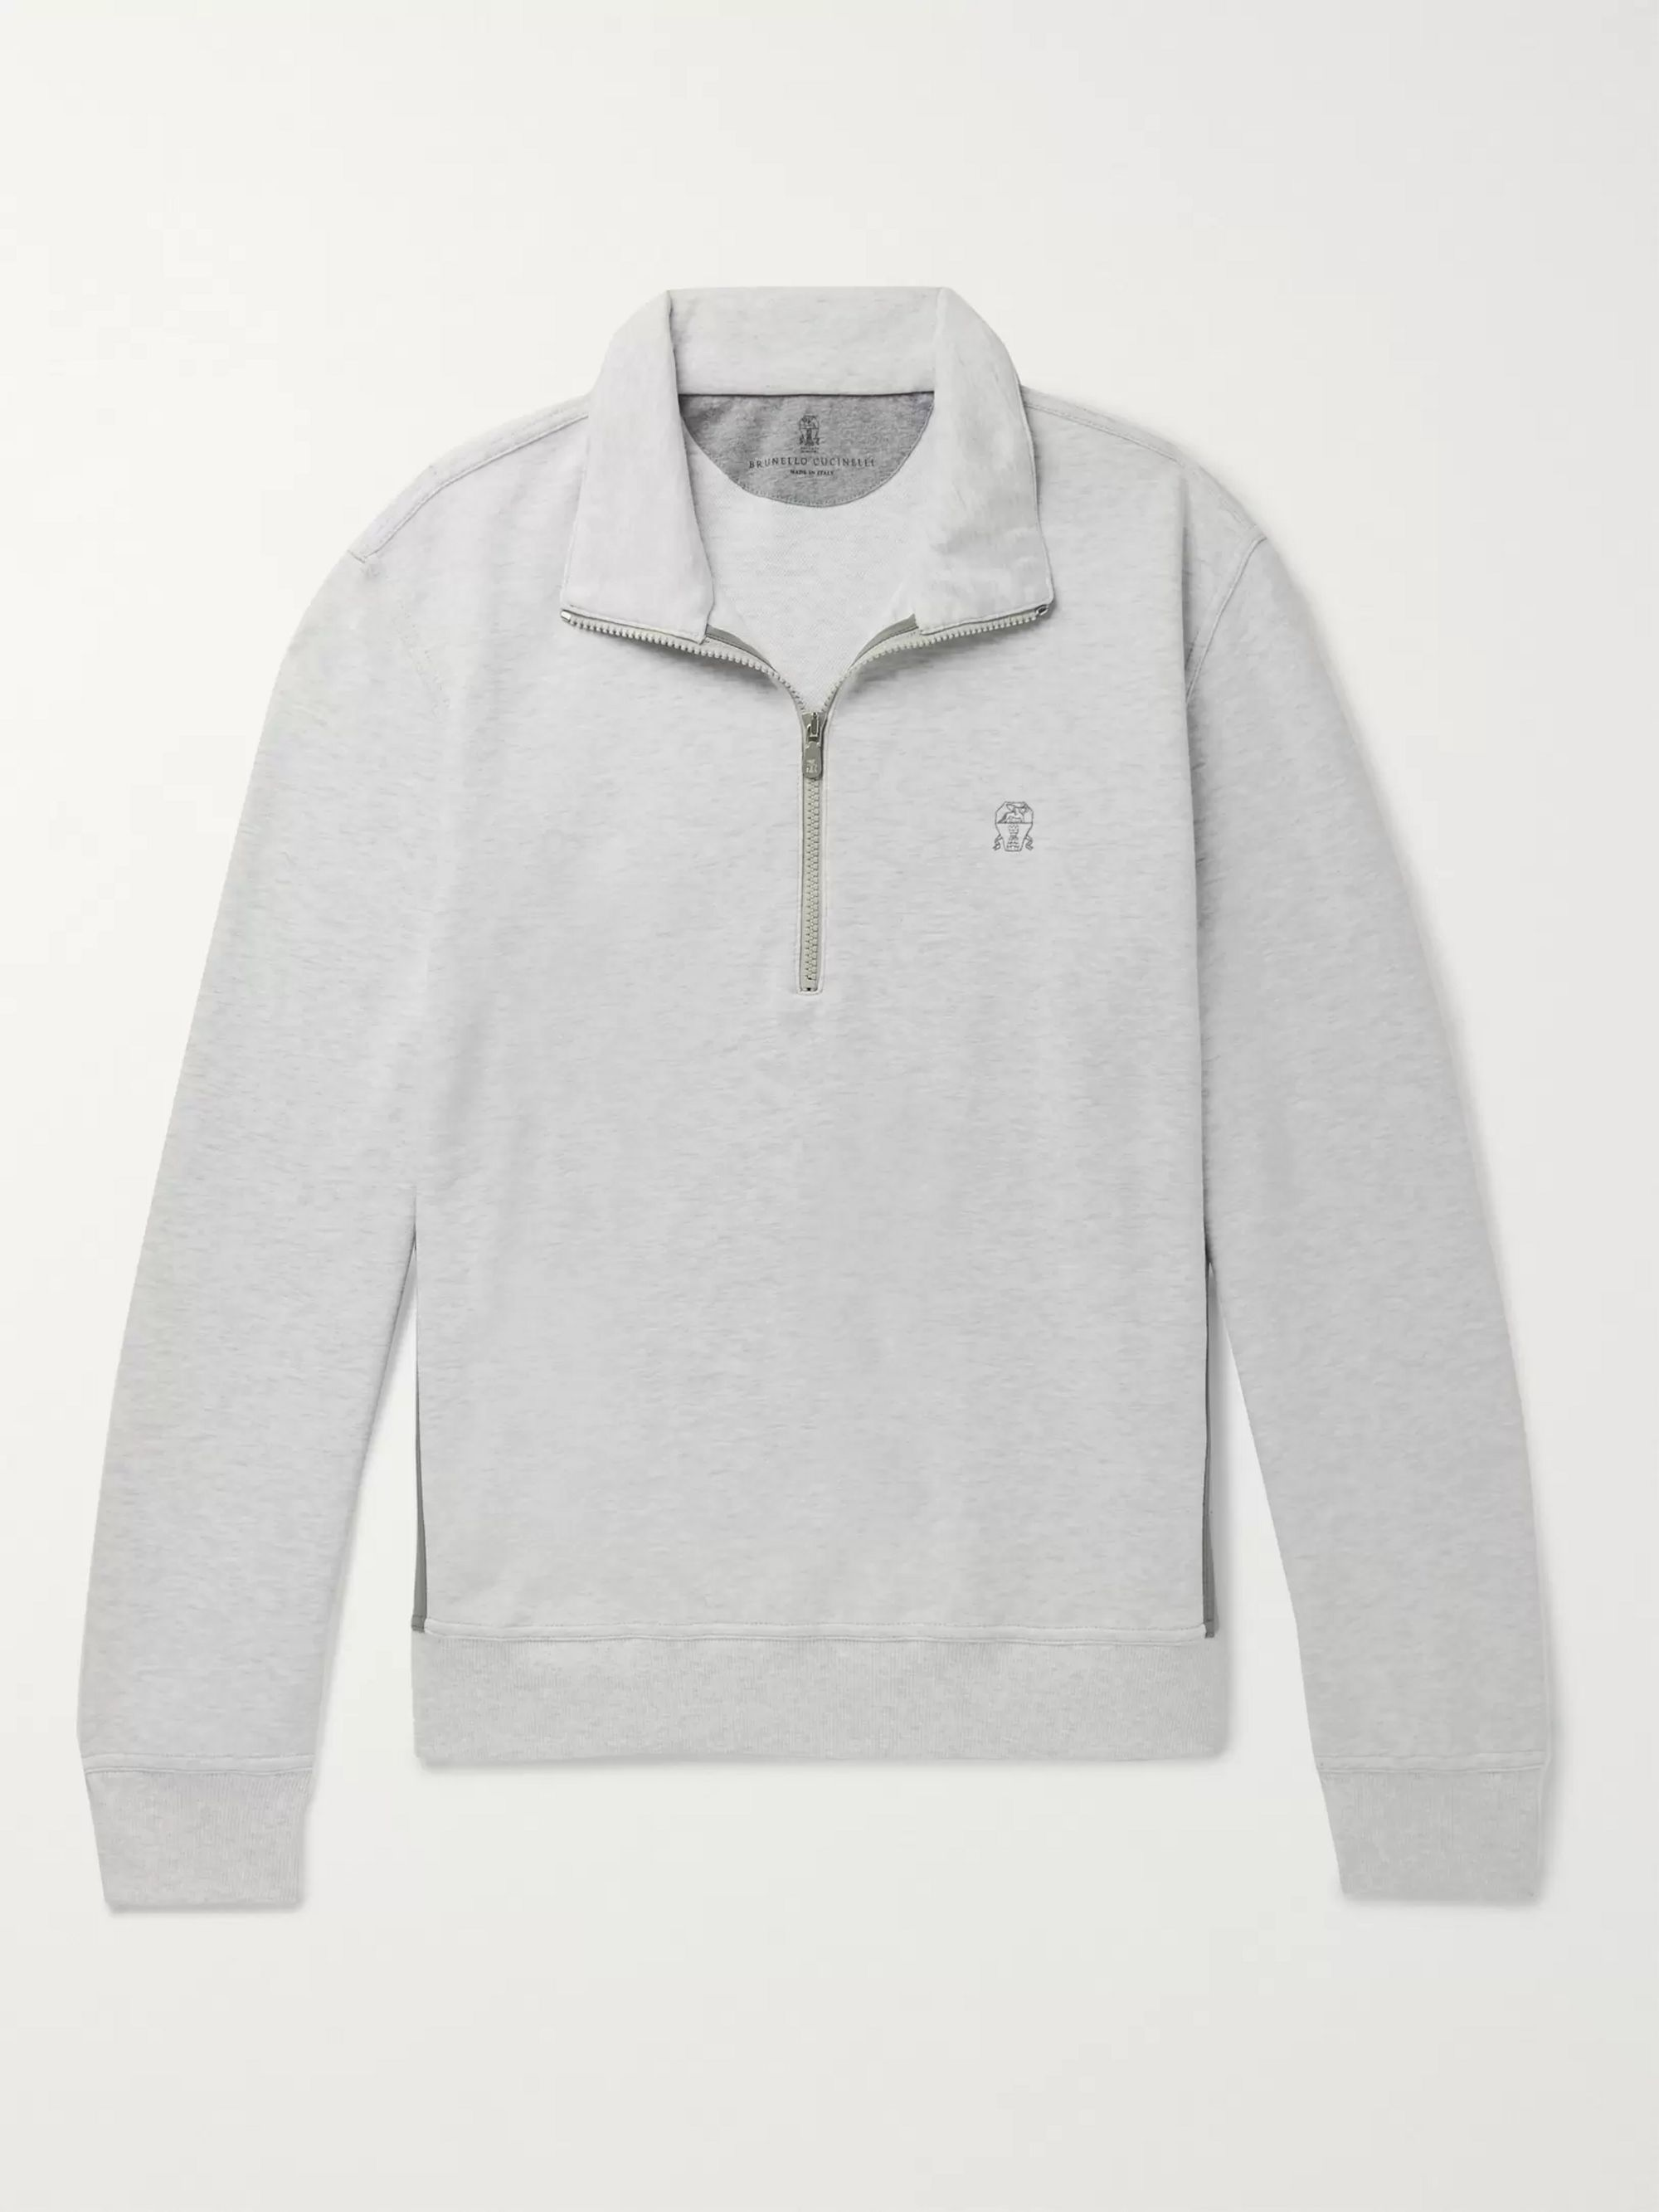 Brunello Cucinelli Nylon-Trimmed Cotton-Blend Jersey Half-Zip Sweatshirt